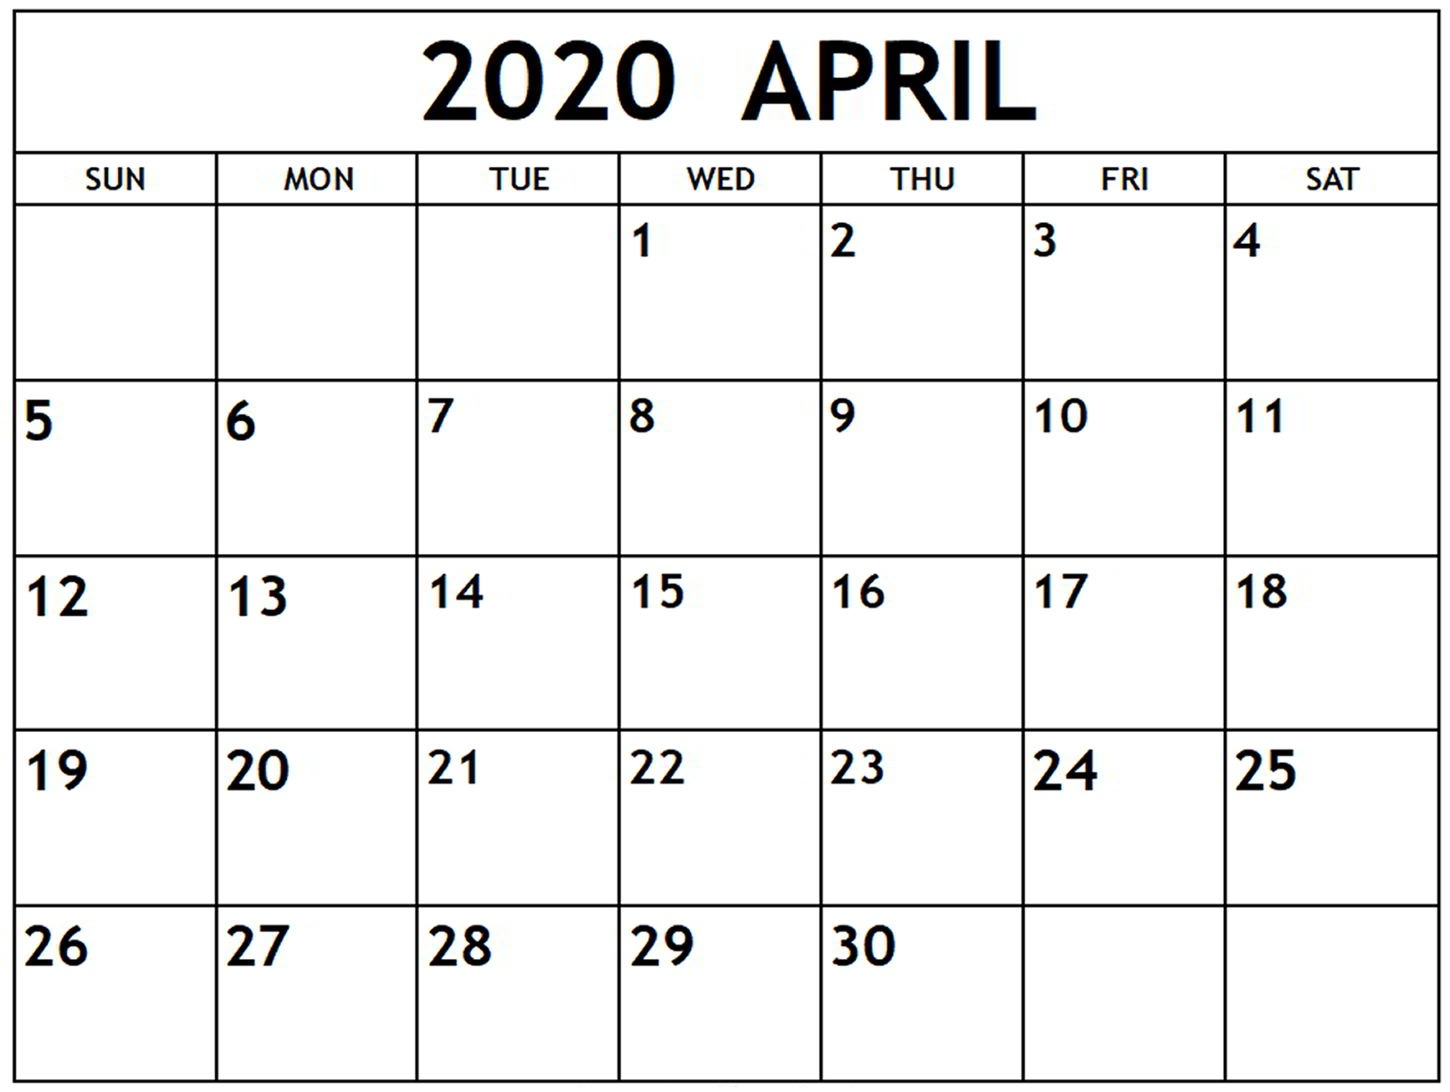 April 2020 Monthly Business Calendar | Free Printable